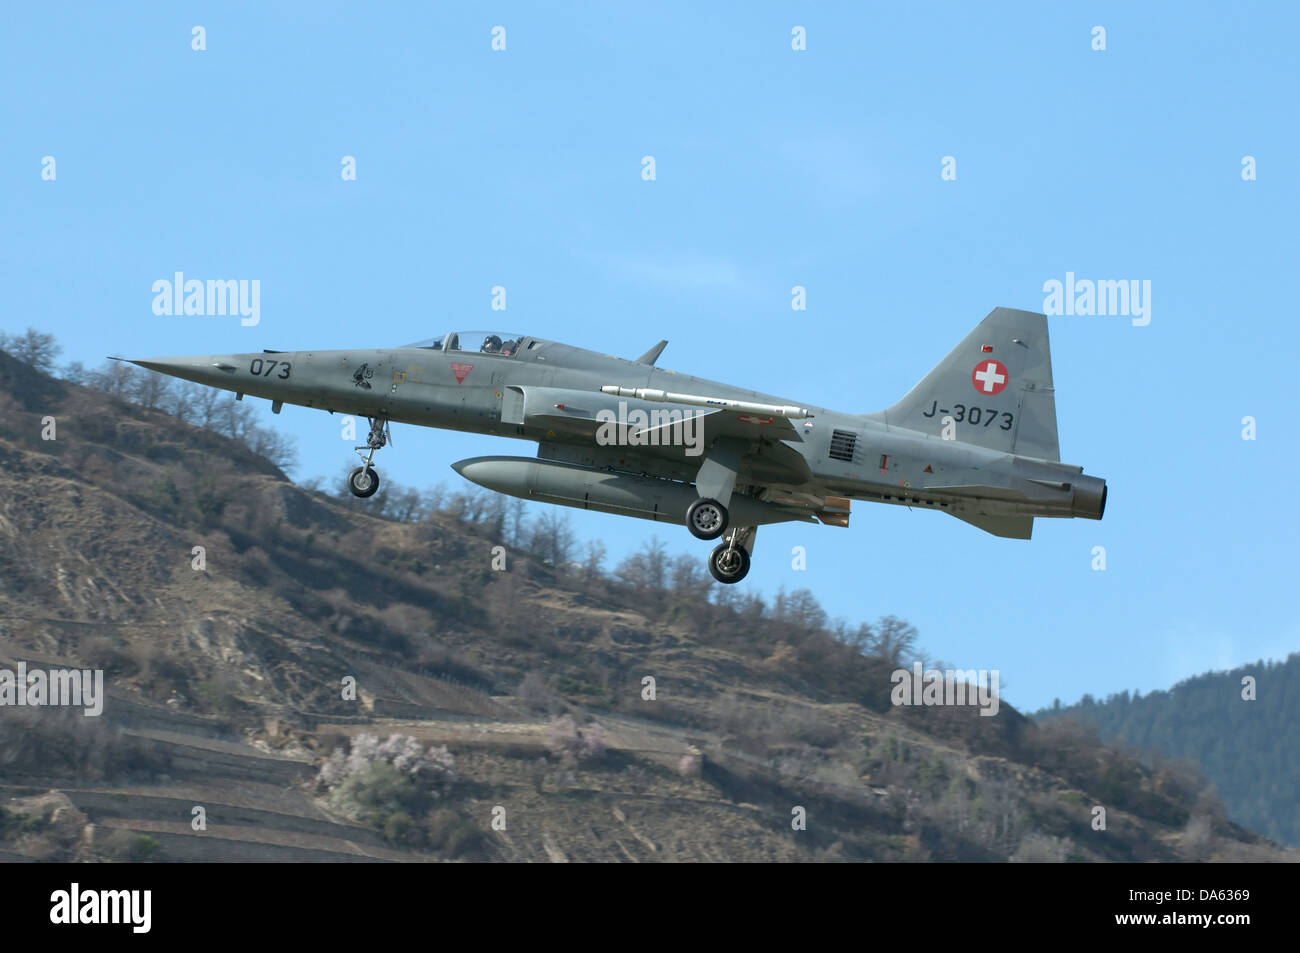 A Northrop F-5E Tiger II fighter jet being flown by the swiss air force, and coming in to land - Stock Image